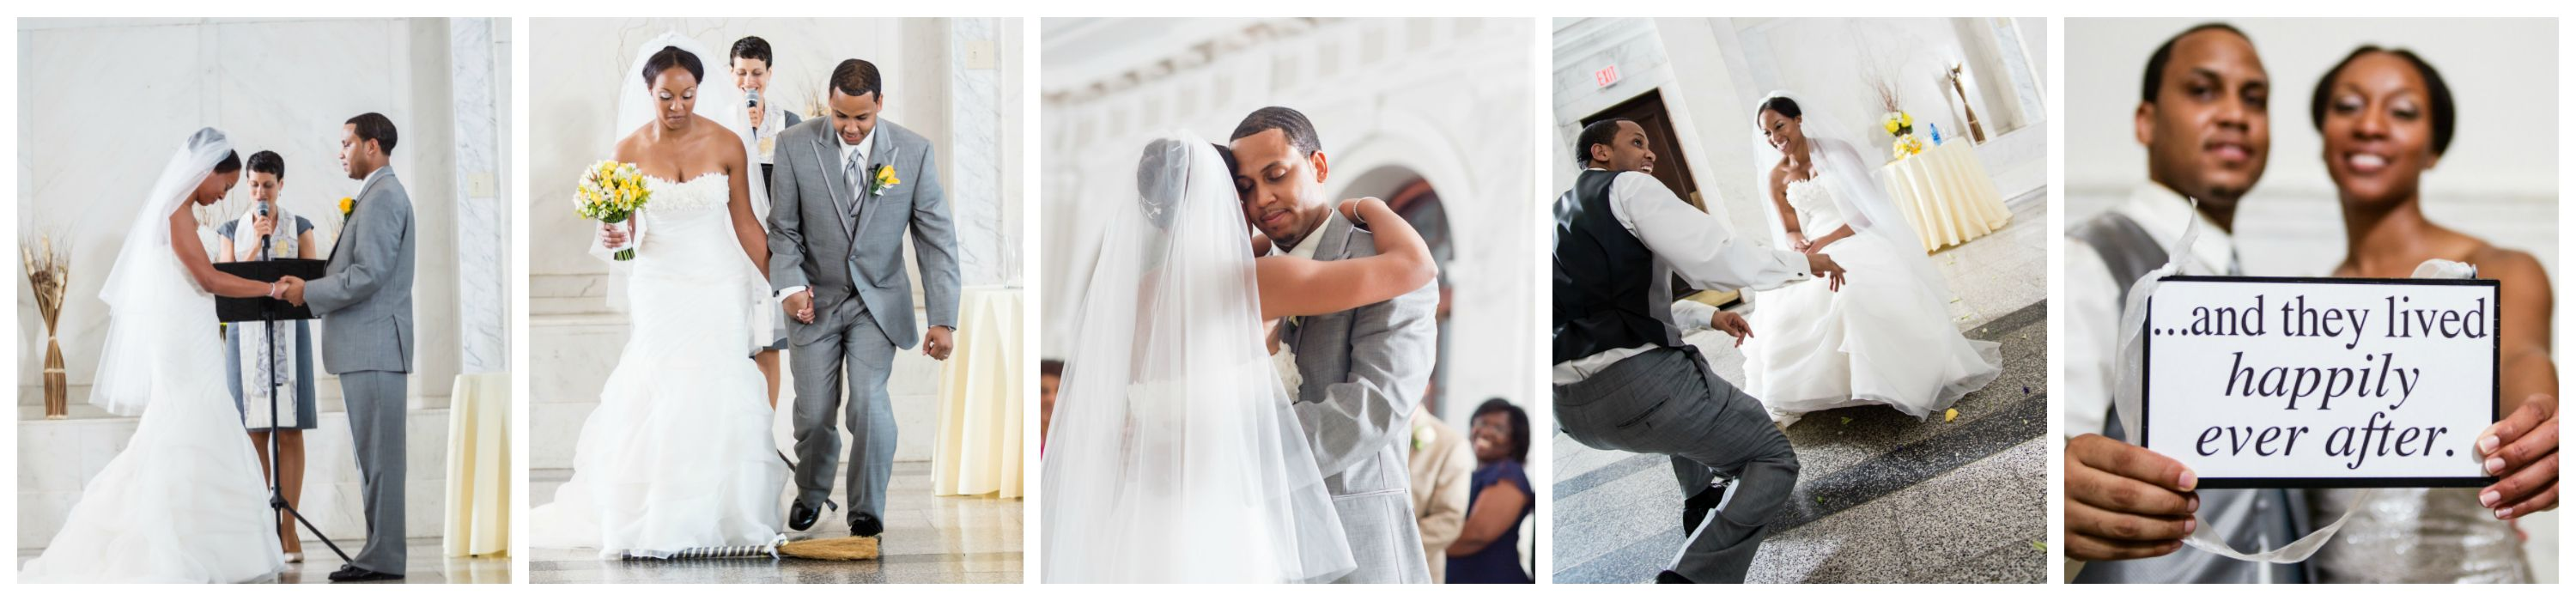 our debt free wedding story